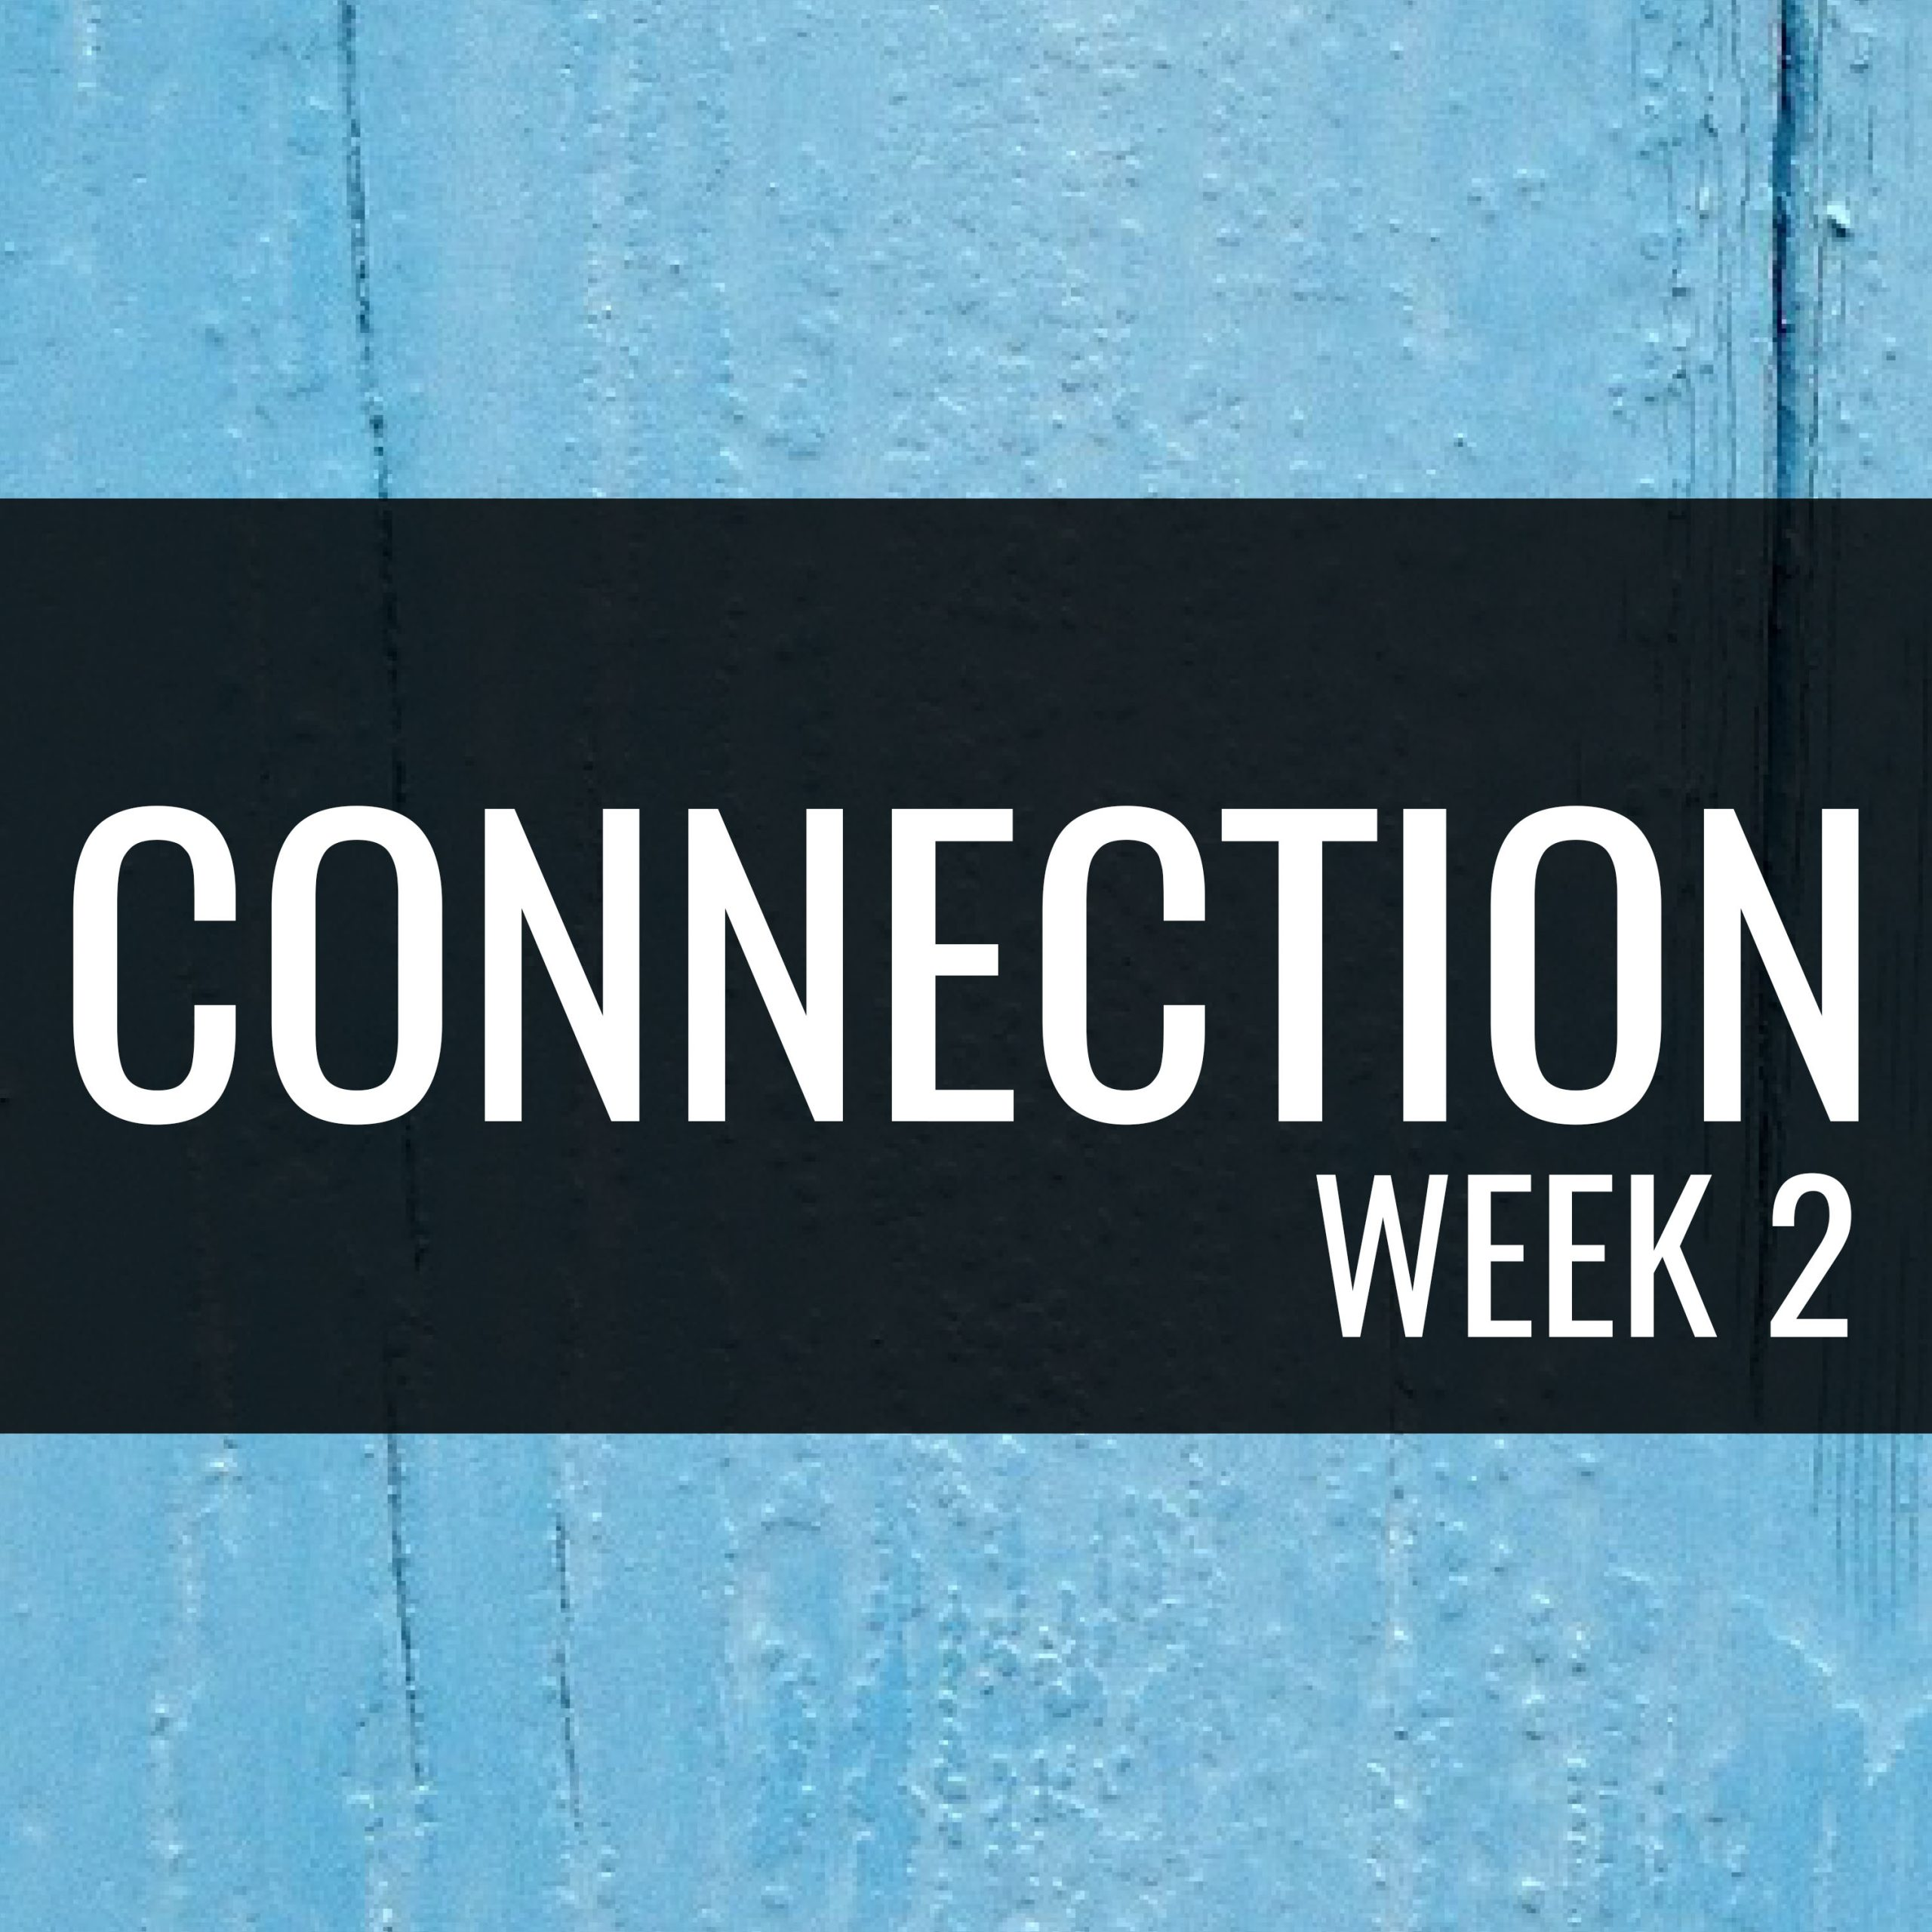 Connection: Week 2